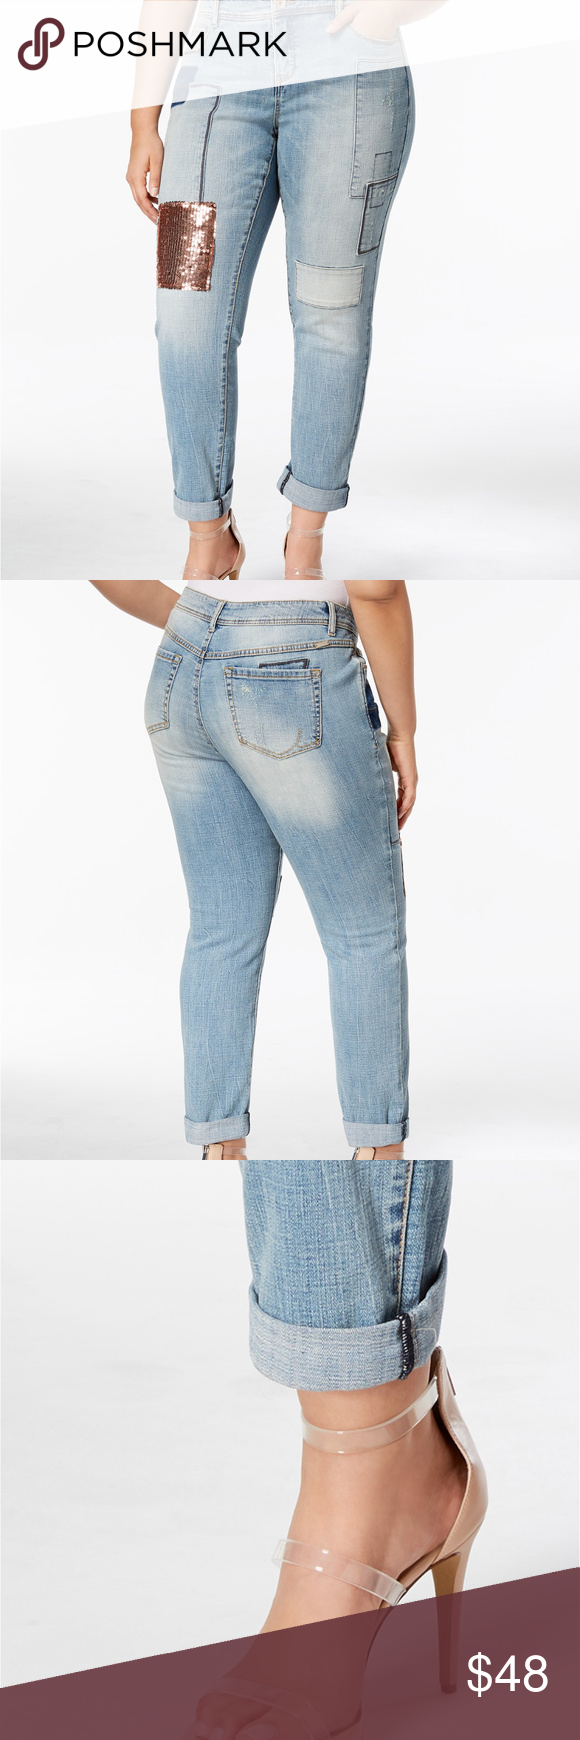 5ab9e69d94b I.N.C. Plus Size Sequin-Patch Boyfriend Jeans Sequined patches elevate the  boyfriend-chic silhouette